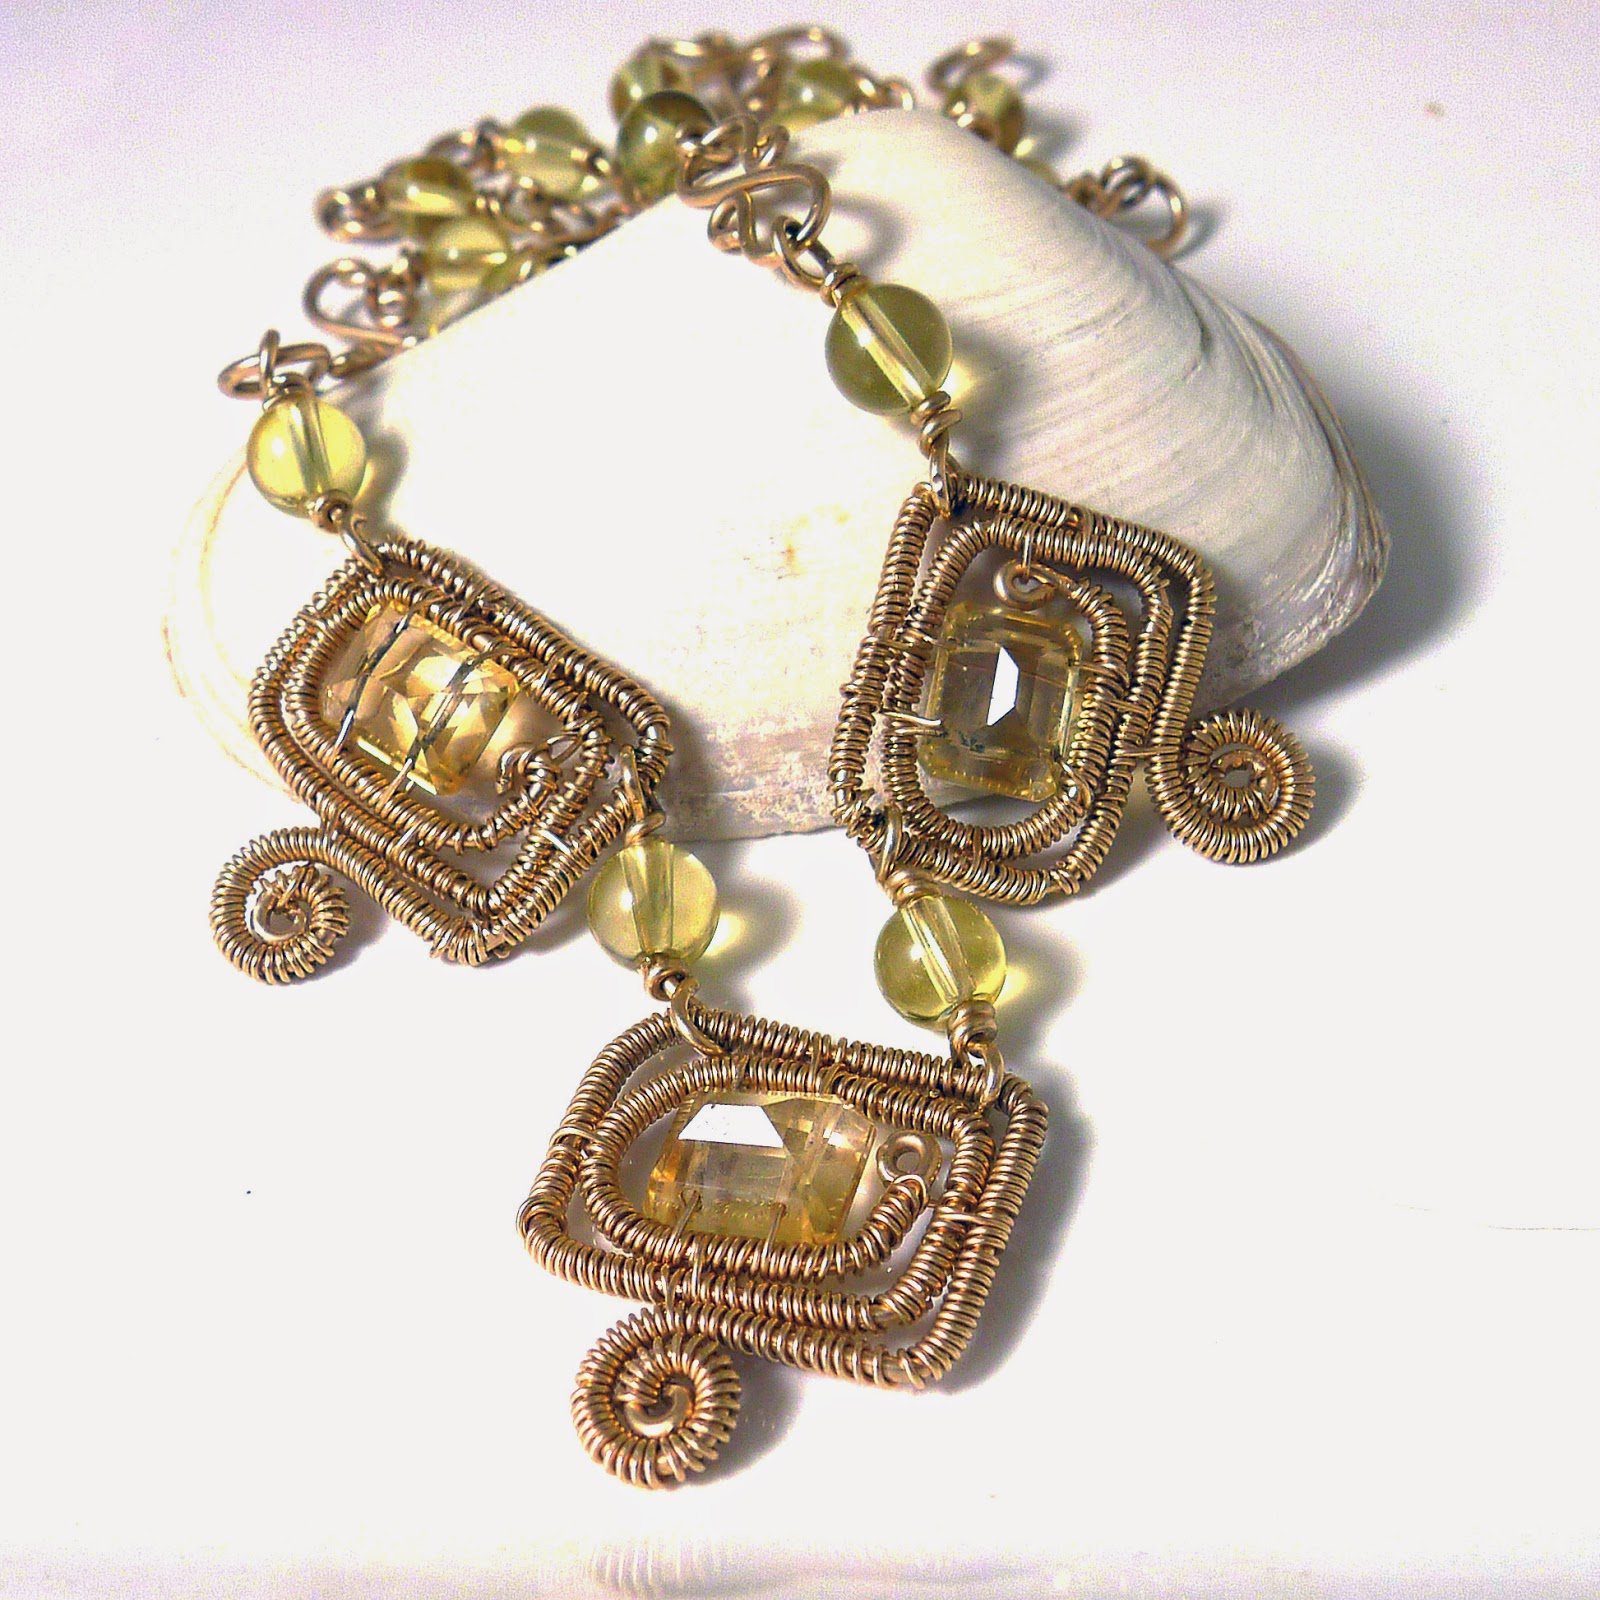 http://www.shazzabethcreations.co.nz/#!product/prd1/2536451321/citrine-and-topaz-14k-gold-motif-necklace